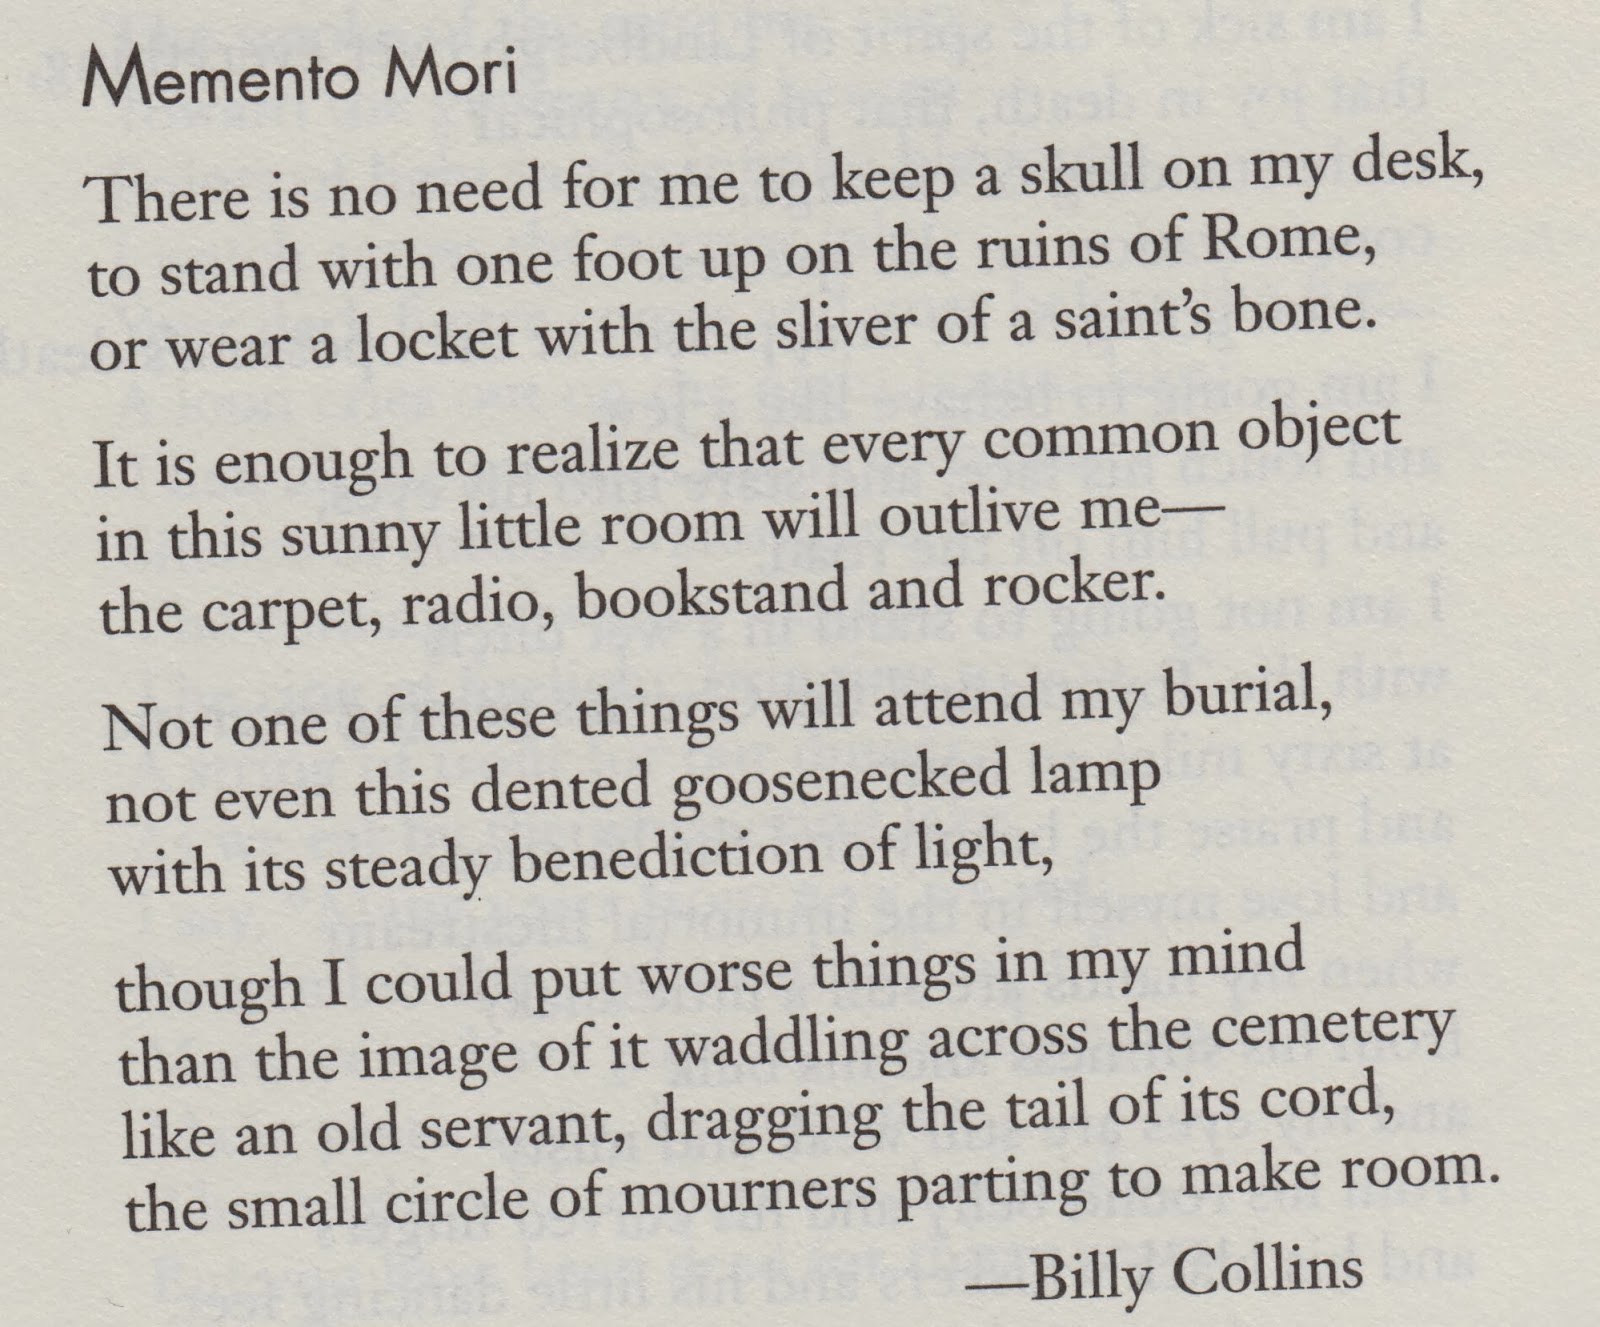 From In the Palm of Your Hand: The Poet's Portable Workshop